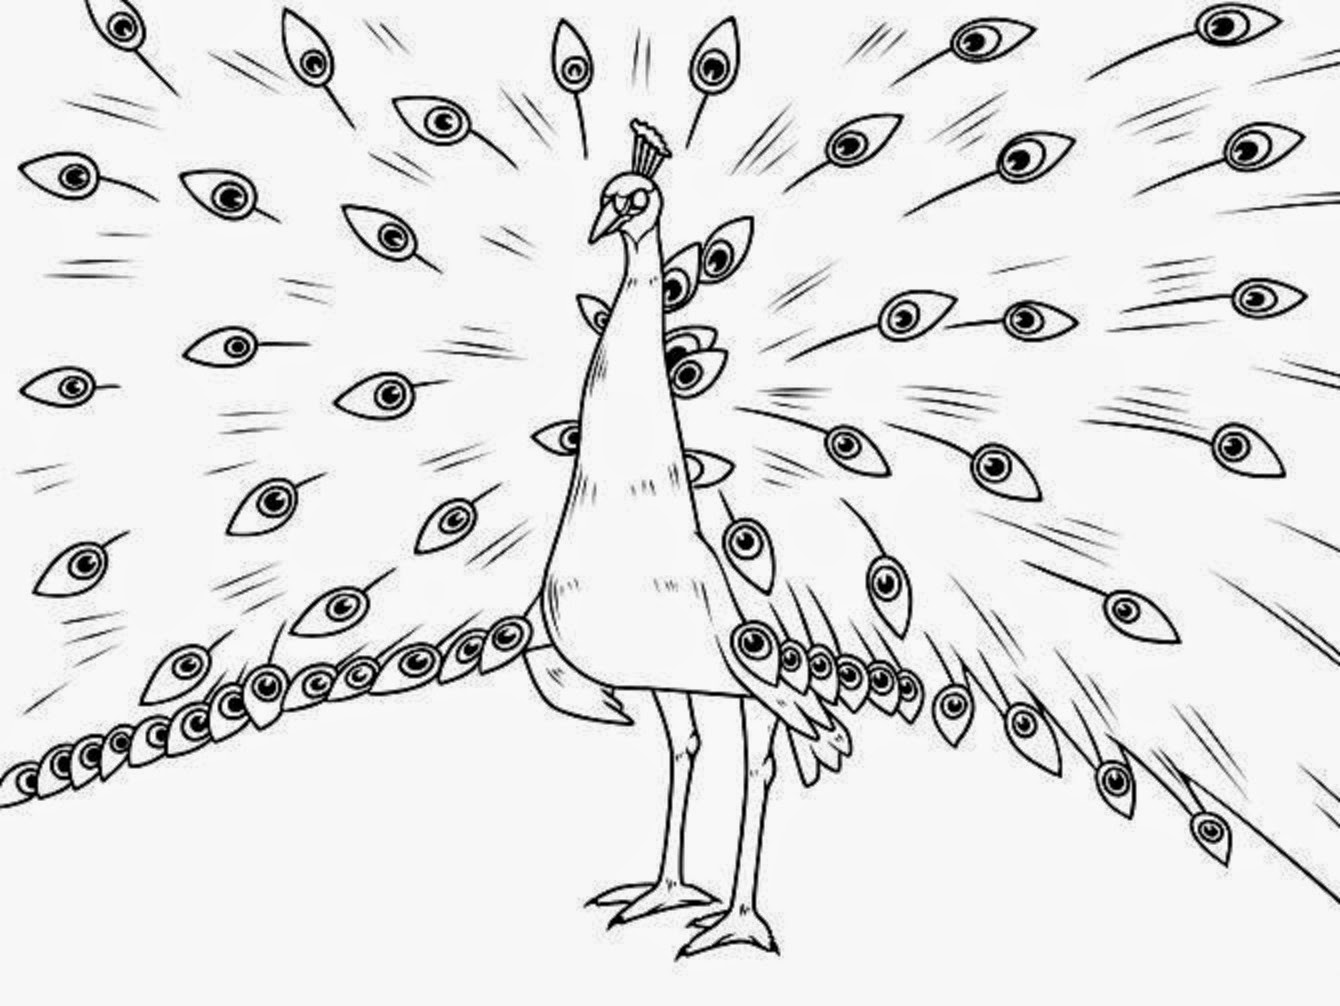 how to draw a peacock step by step for kids free peacock pictures for kids download free clip art step for peacock step by how a kids to draw